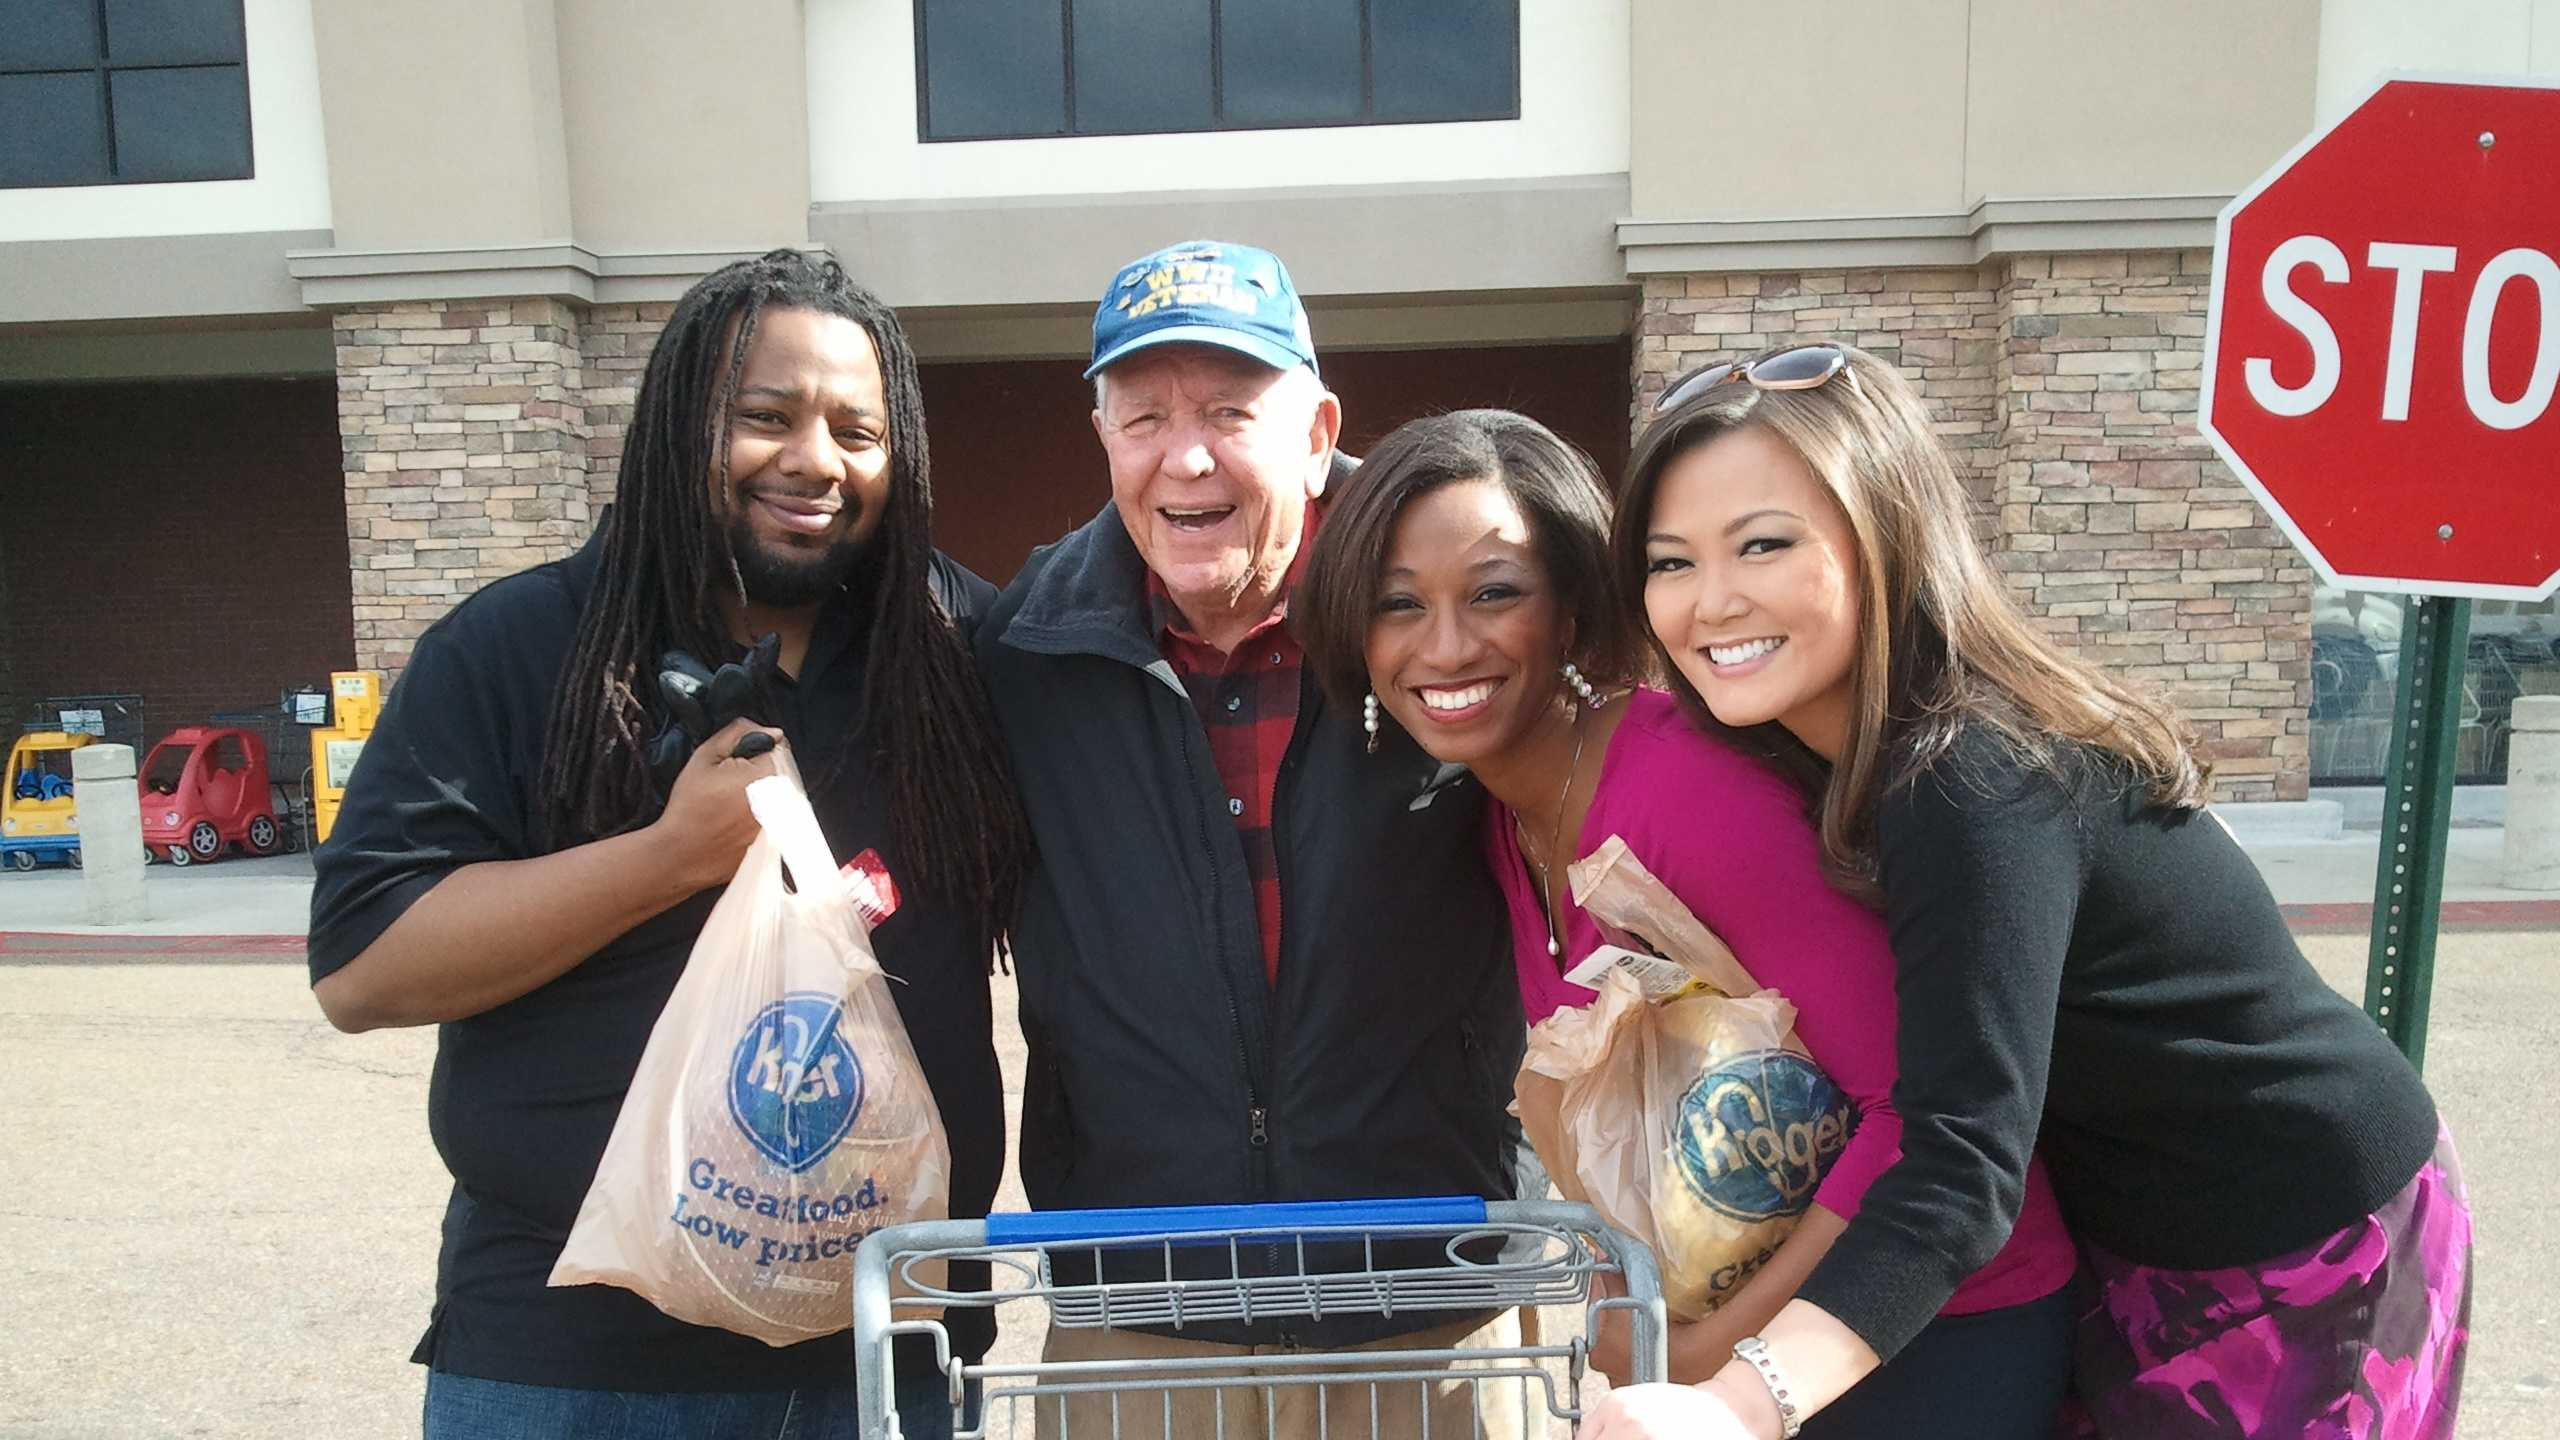 William, a WWII veteran from Ridgeland, bought and donated three turkeys for Turkey Drive 16.